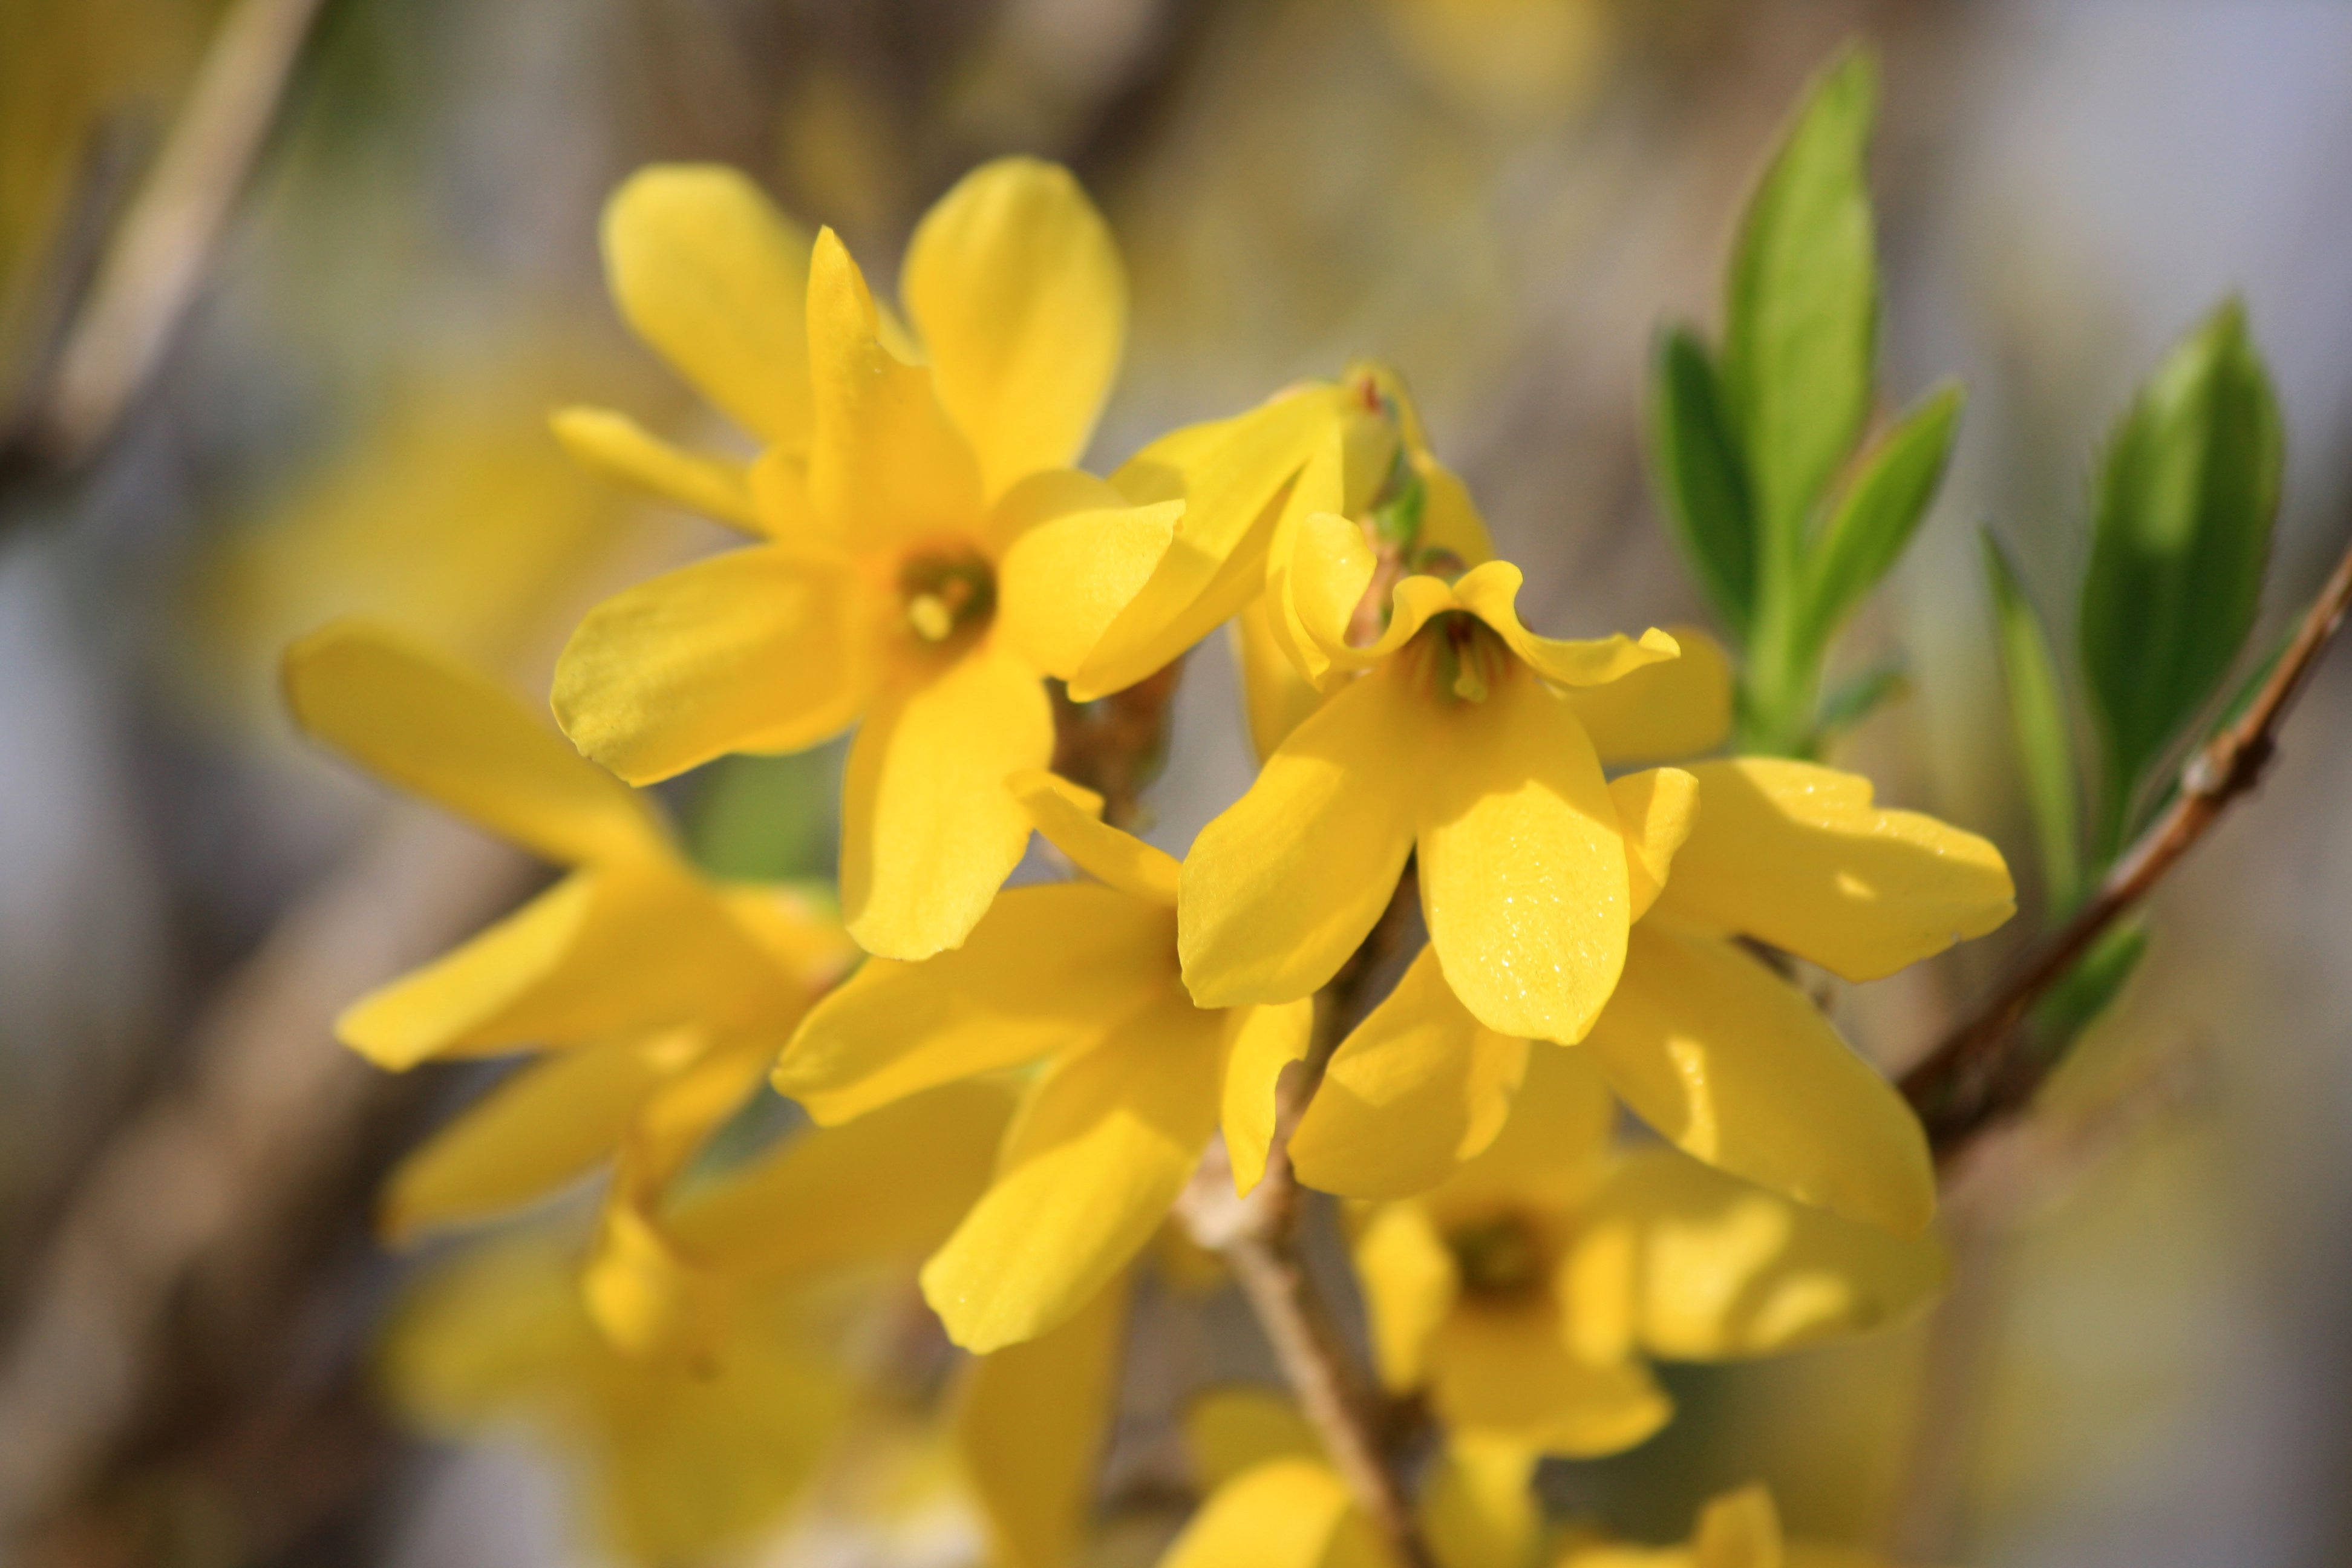 yellow forsythia flowers picture  free photograph  photos public, Beautiful flower